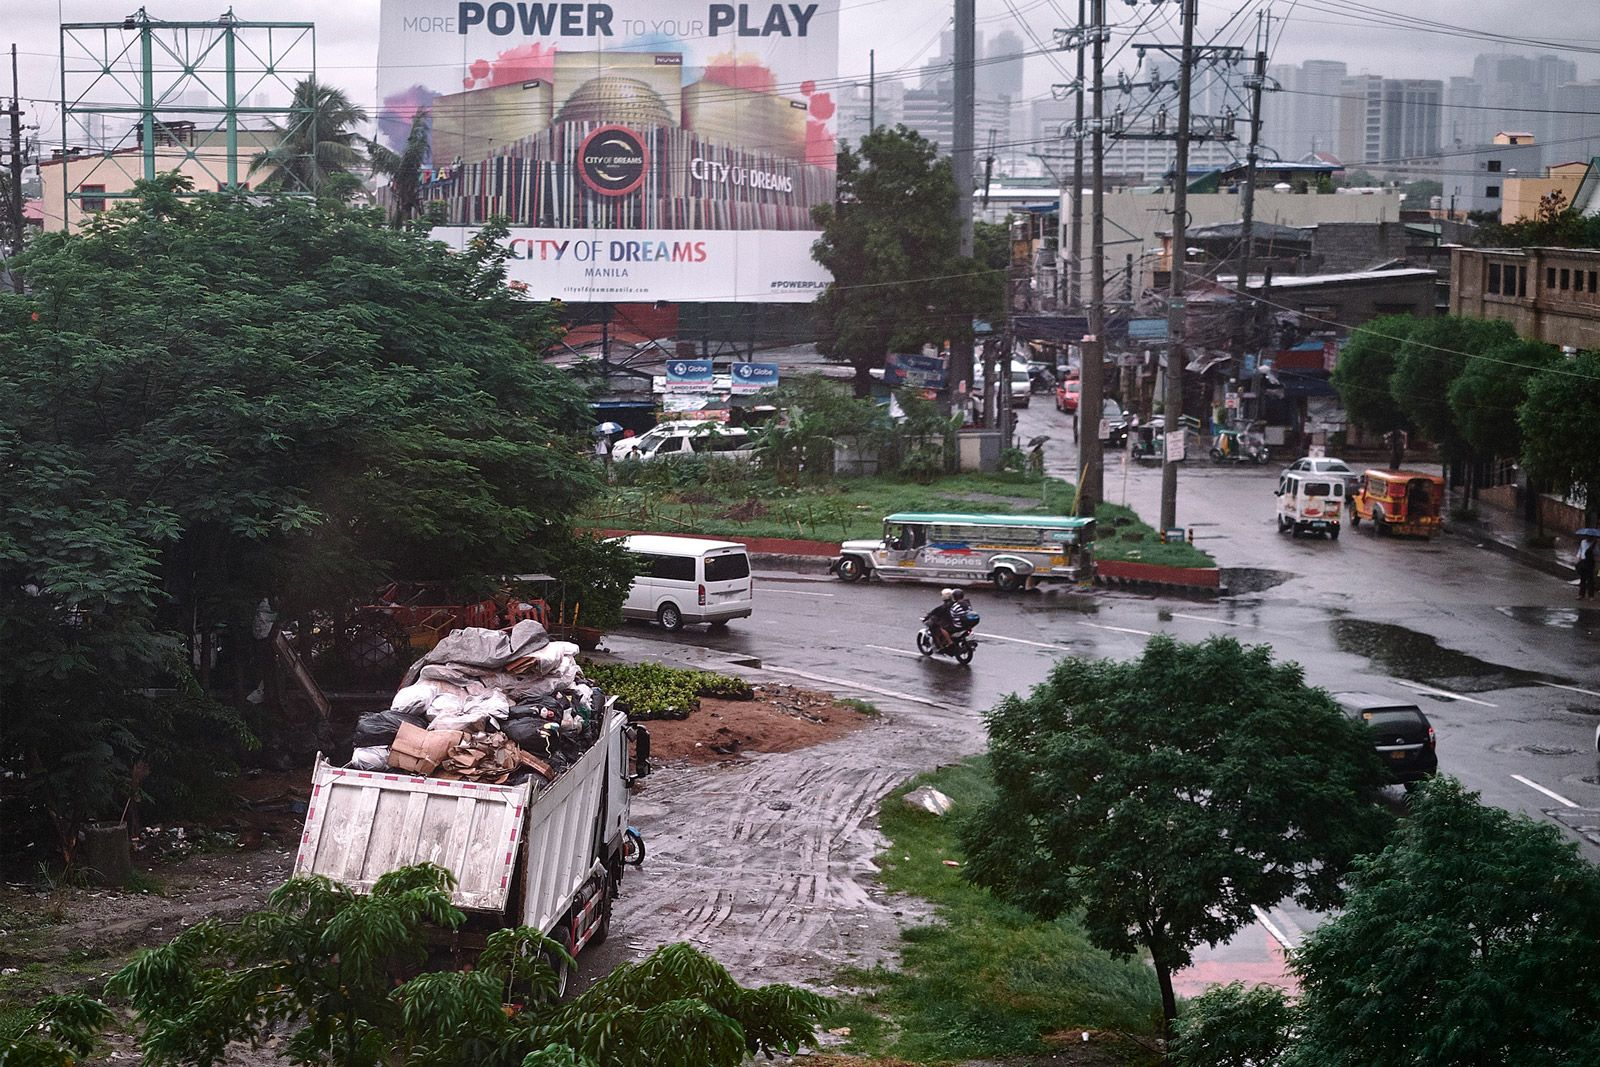 lester jones the philippines photography main2 highsnobiety travel